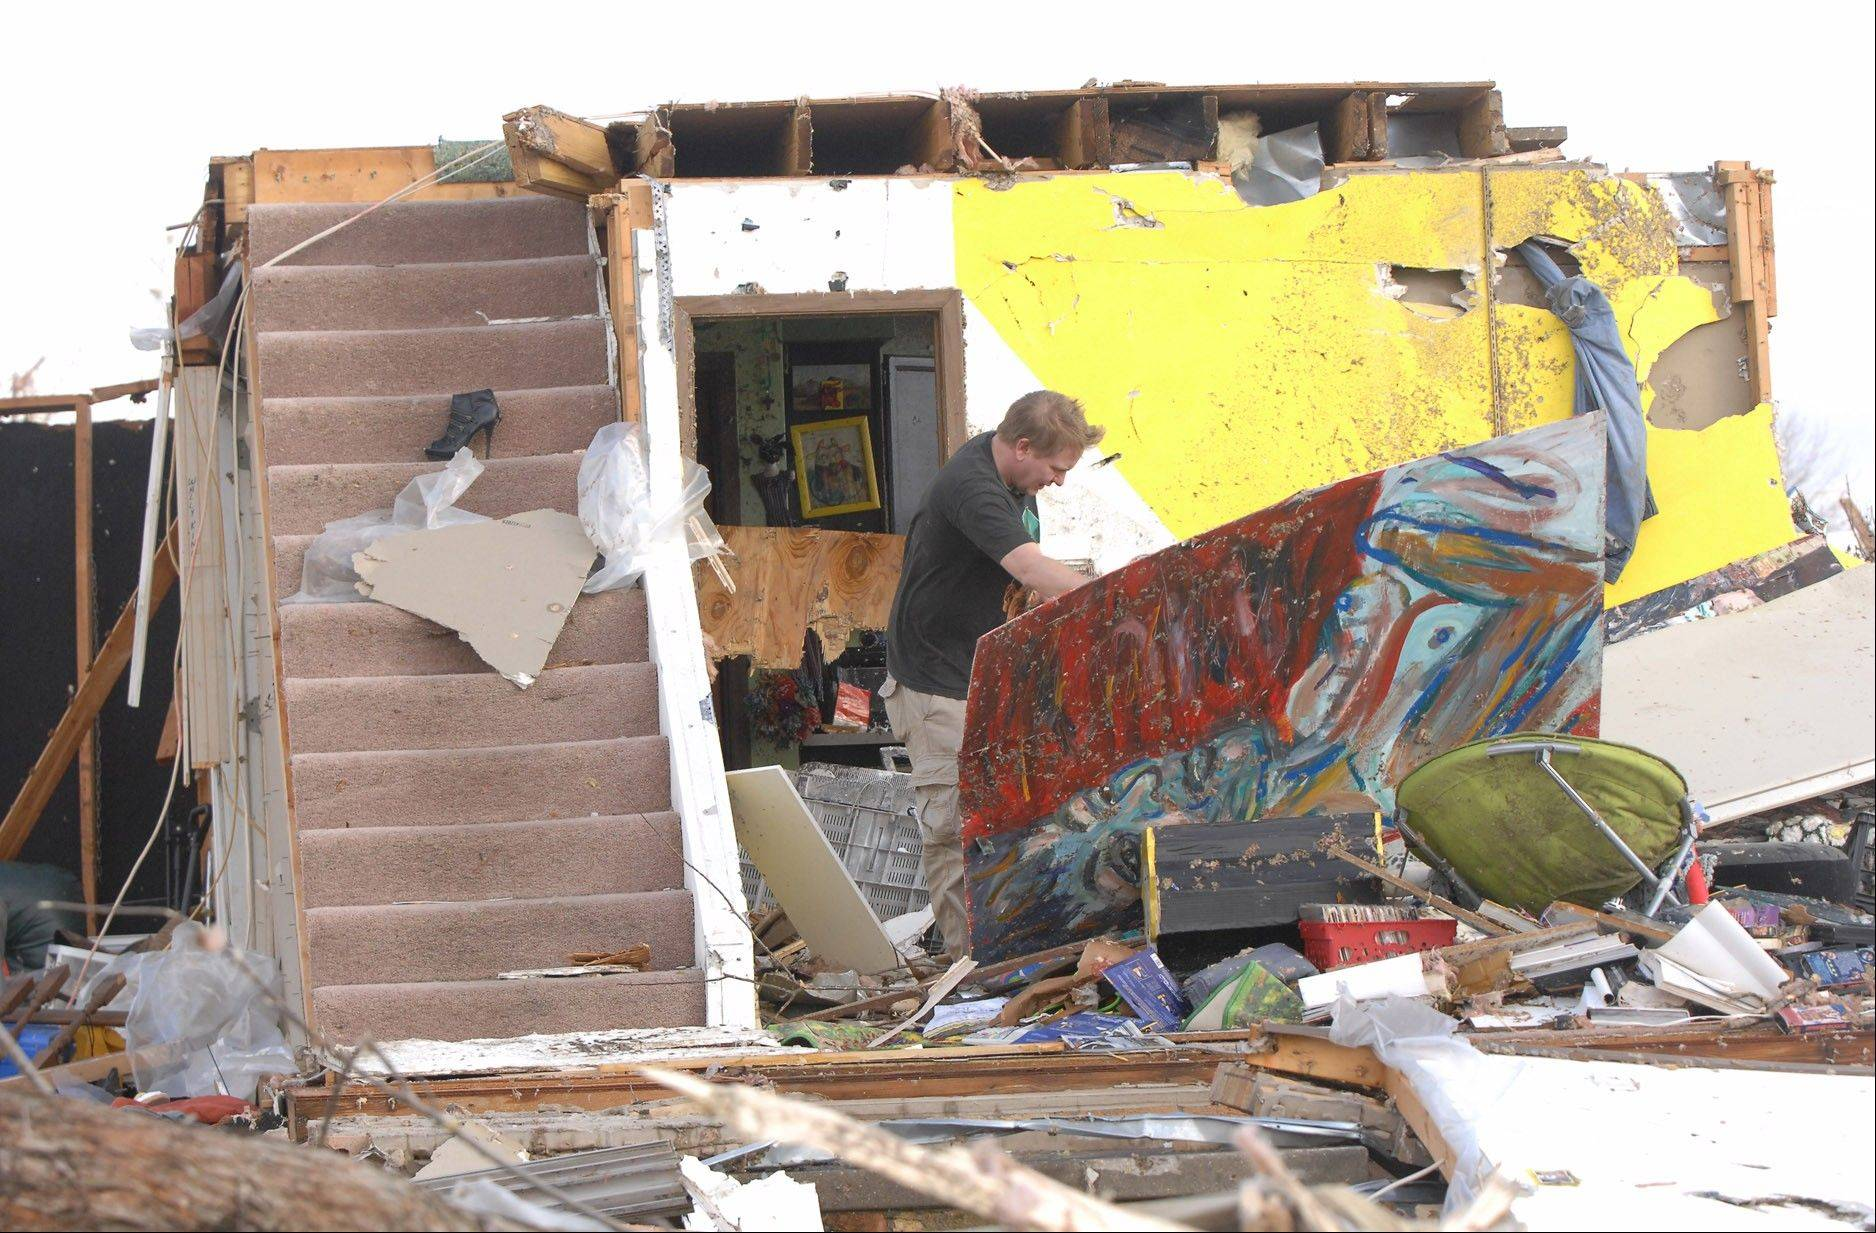 A Washington homeowner moves debris next to a set of stairs that once lead to the second floor of his home in Washington, Ill., Sunday, Nov. 17, 2013. Intense thunderstorms and tornadoes swept across the Midwest, causing extensive damage in several central Illinois communities while sending people to their basements for shelter.